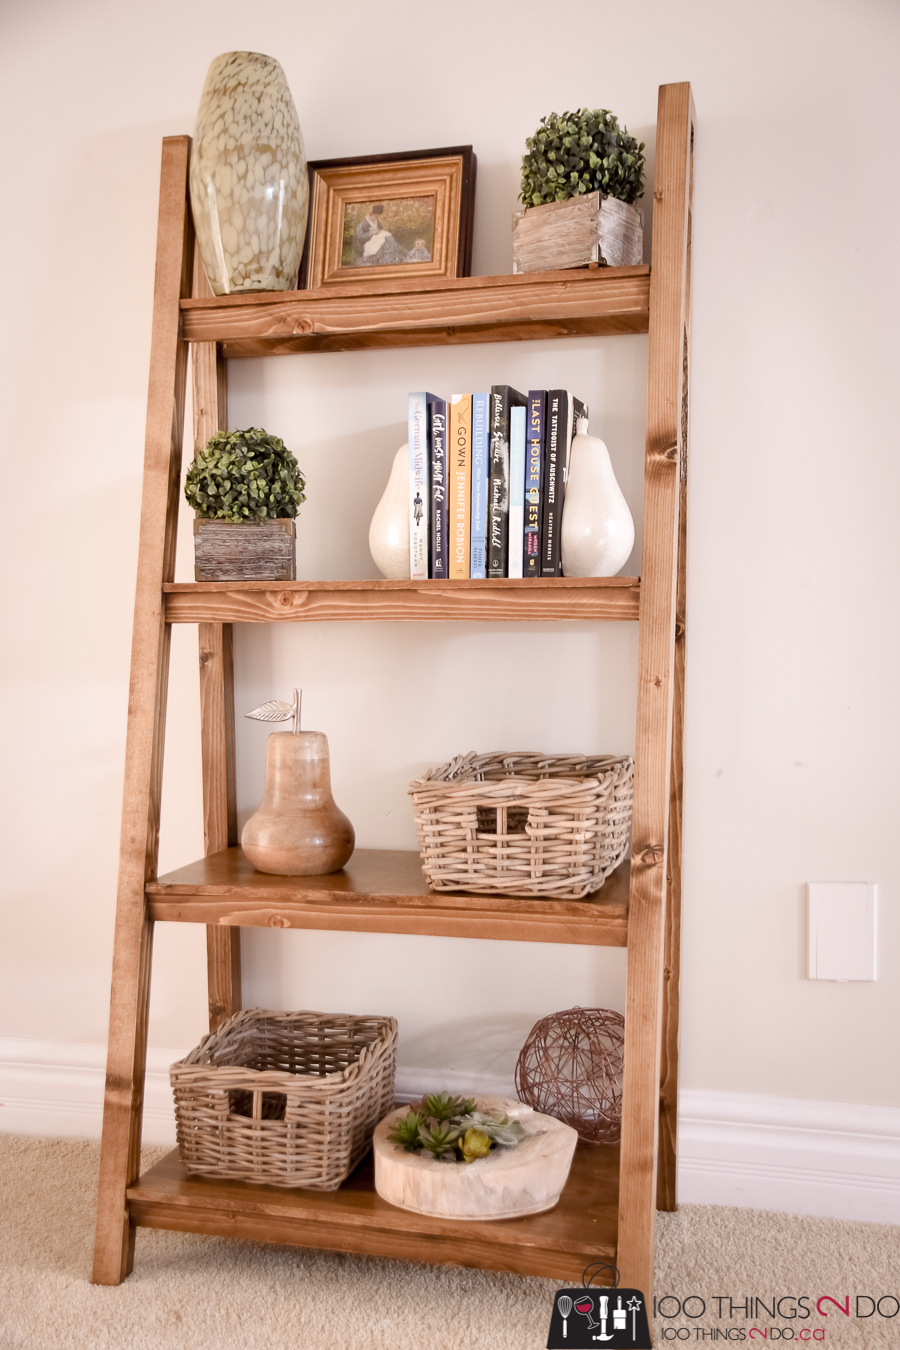 Freestanding bookcase, freestanding bookshelf, DIY bookcase, angled bookcase